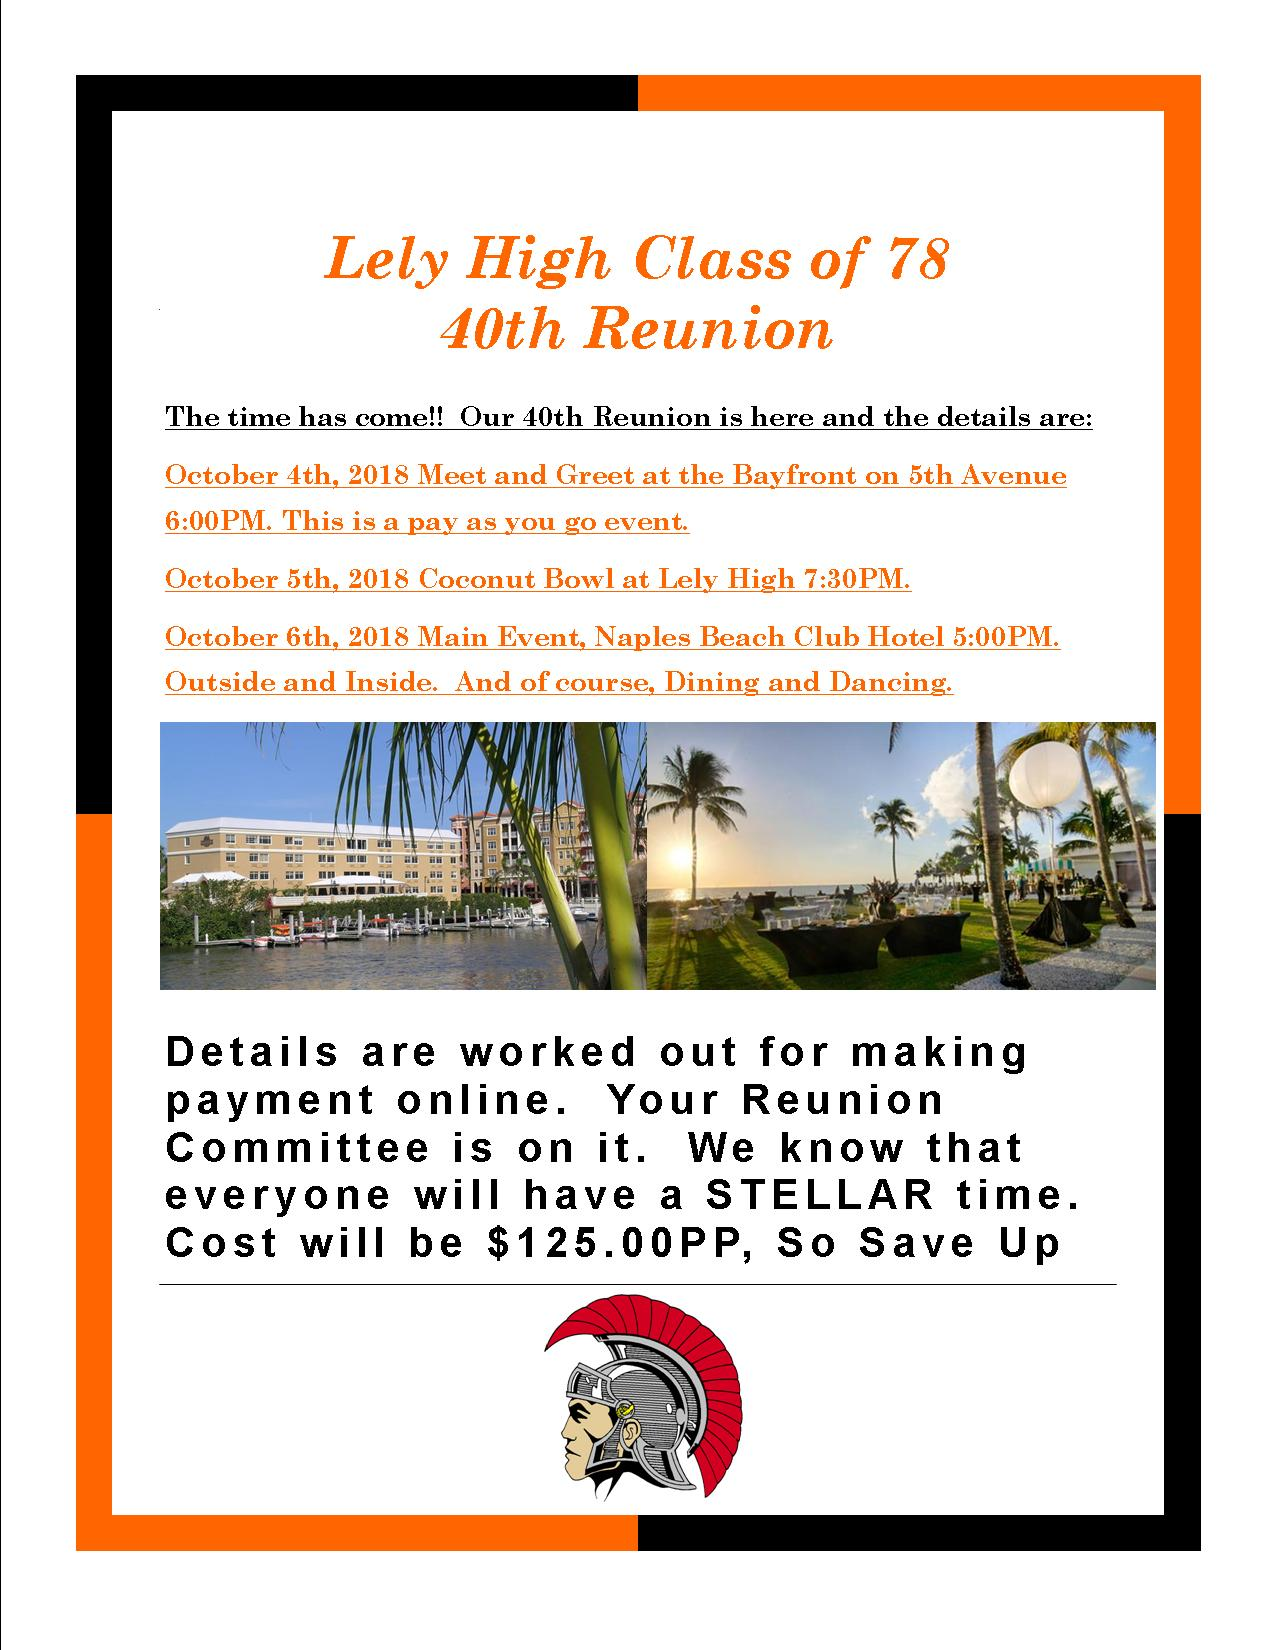 Lely High School - Class of 1978 Reunion